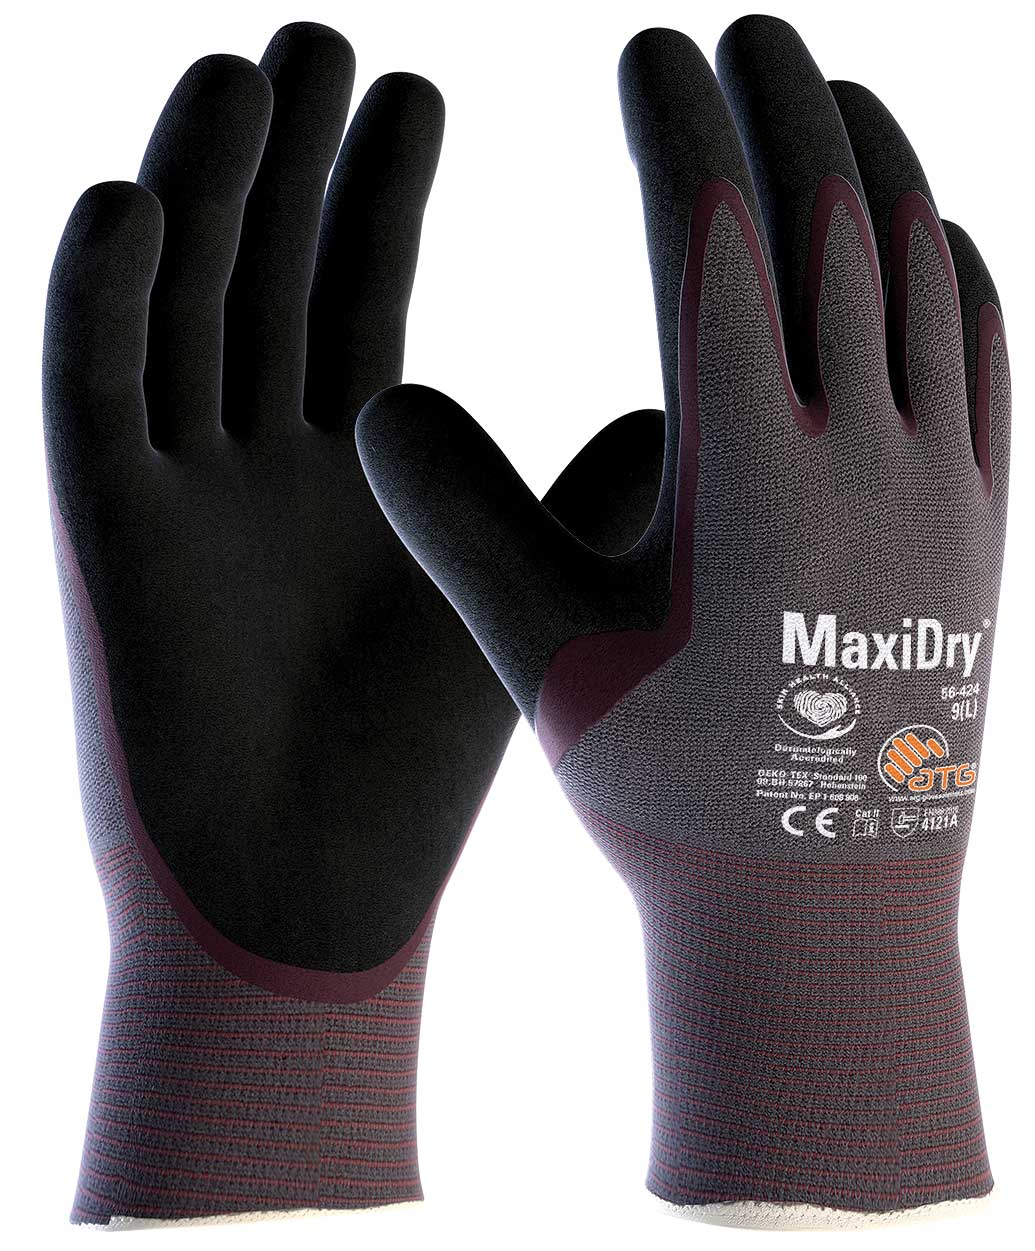 56-424 MaxiDry® Palm Coated Image